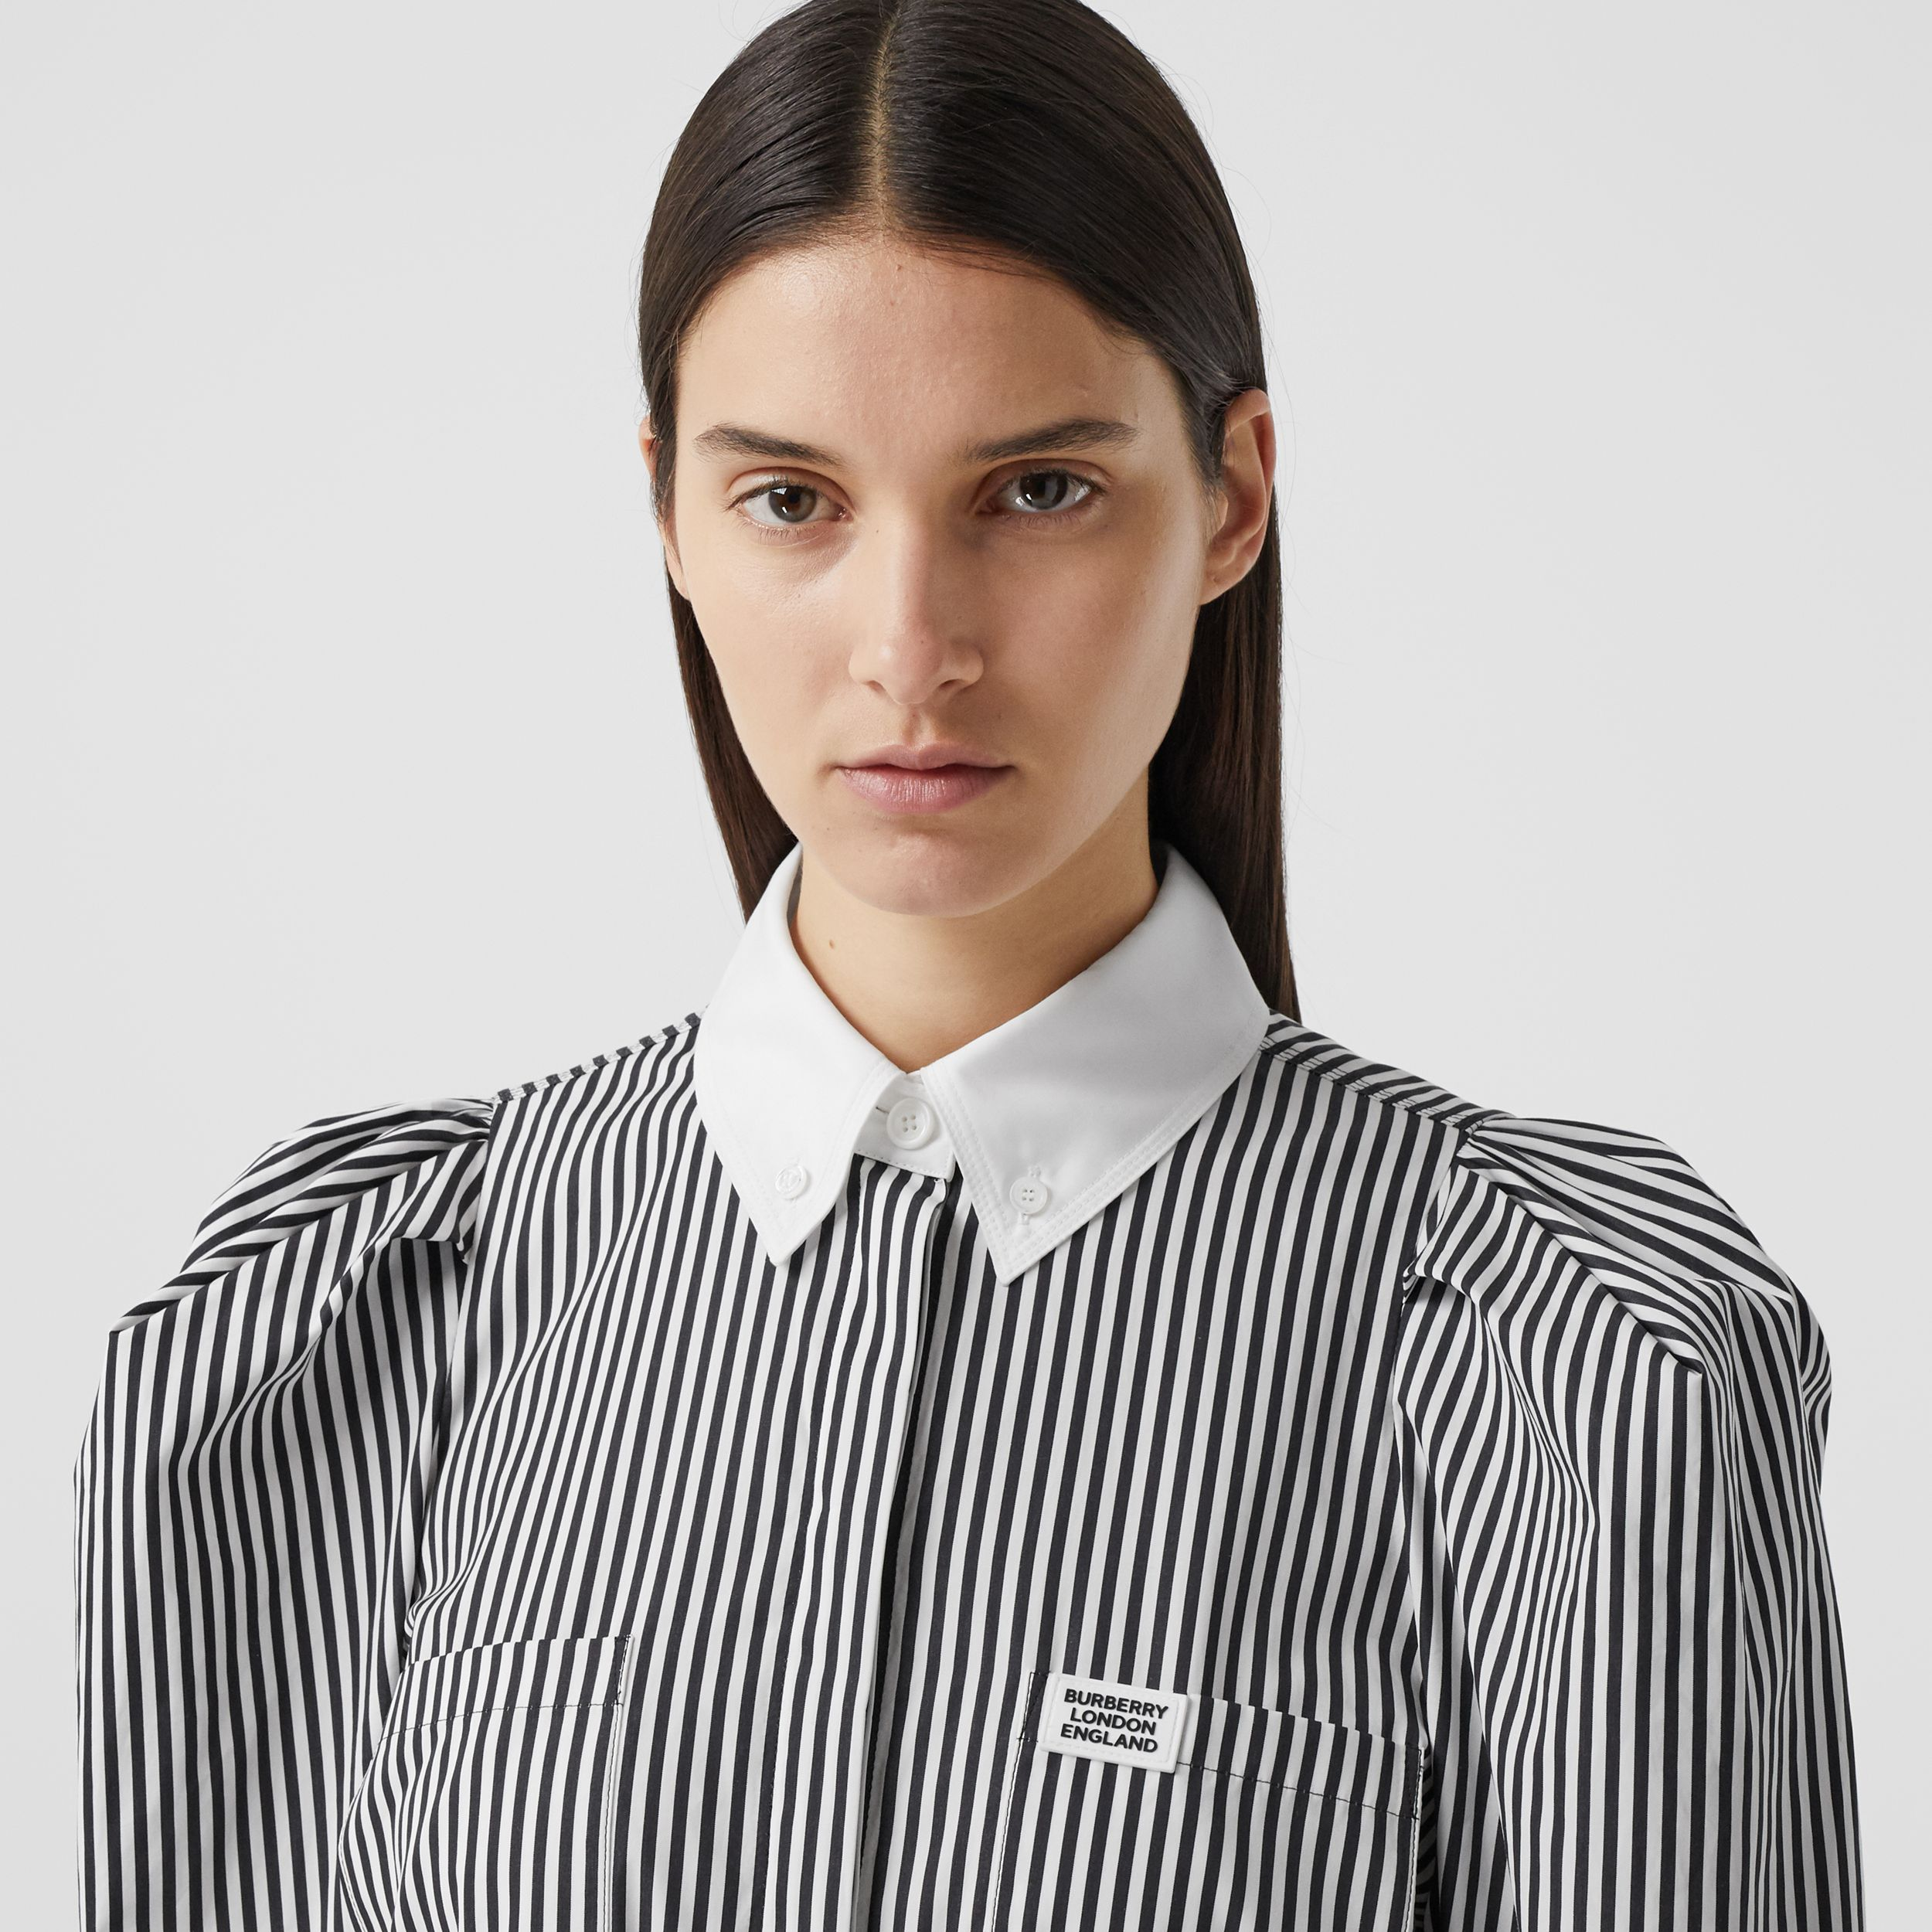 Logo Appliqué Striped Cotton Poplin Shirt Dress in Black - Women | Burberry - 2